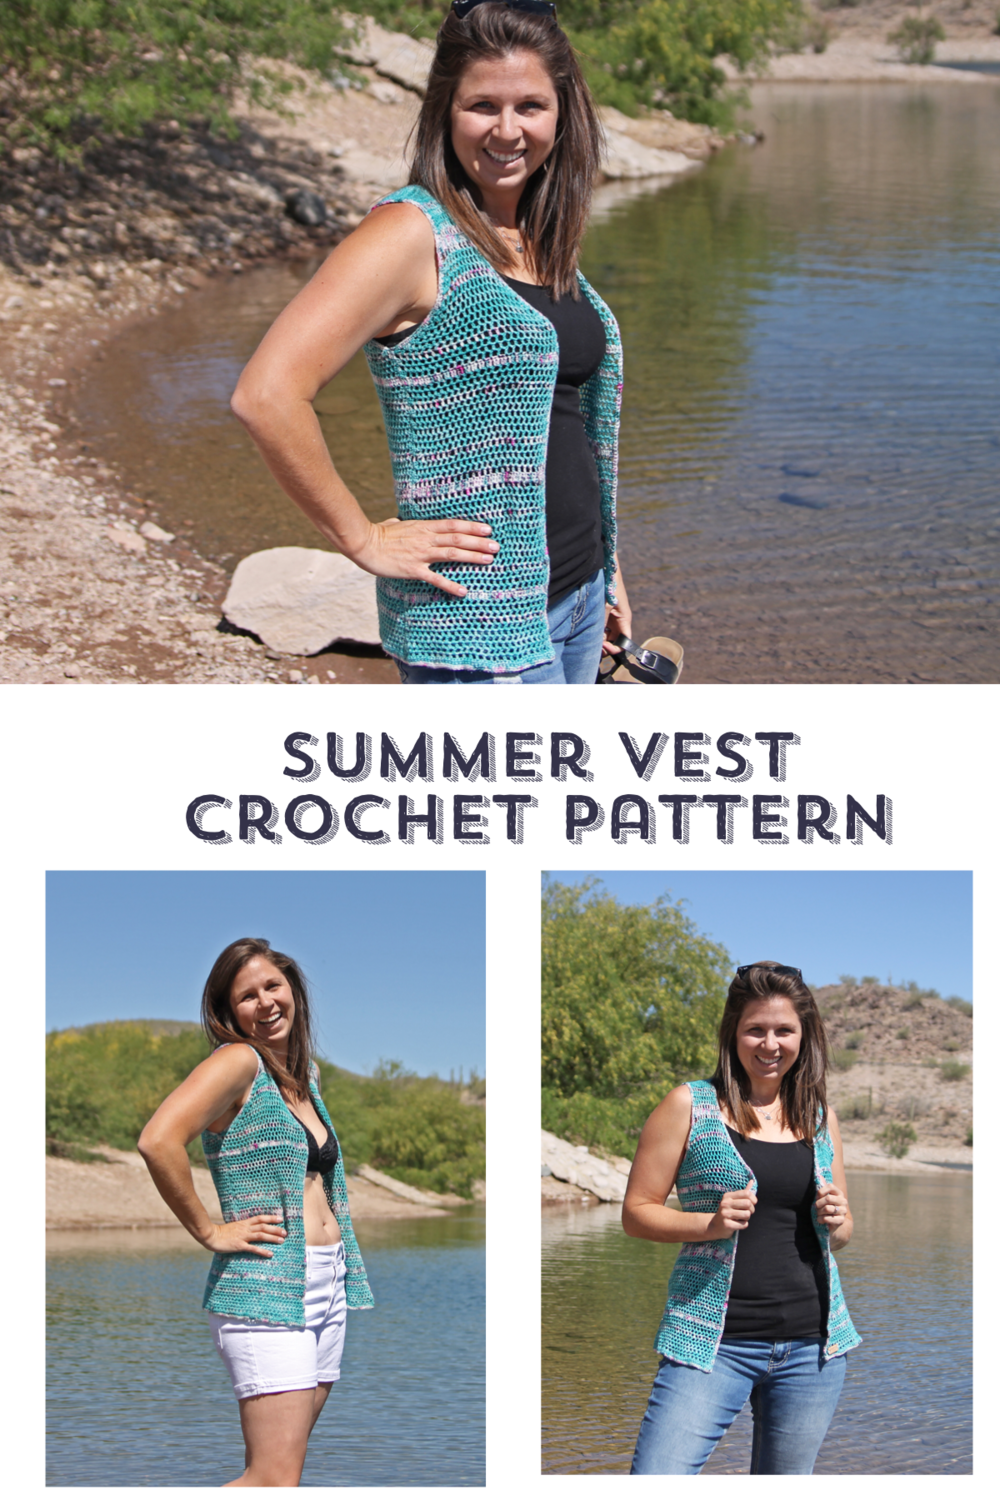 summer-vest-crochet-pattern.jpeg